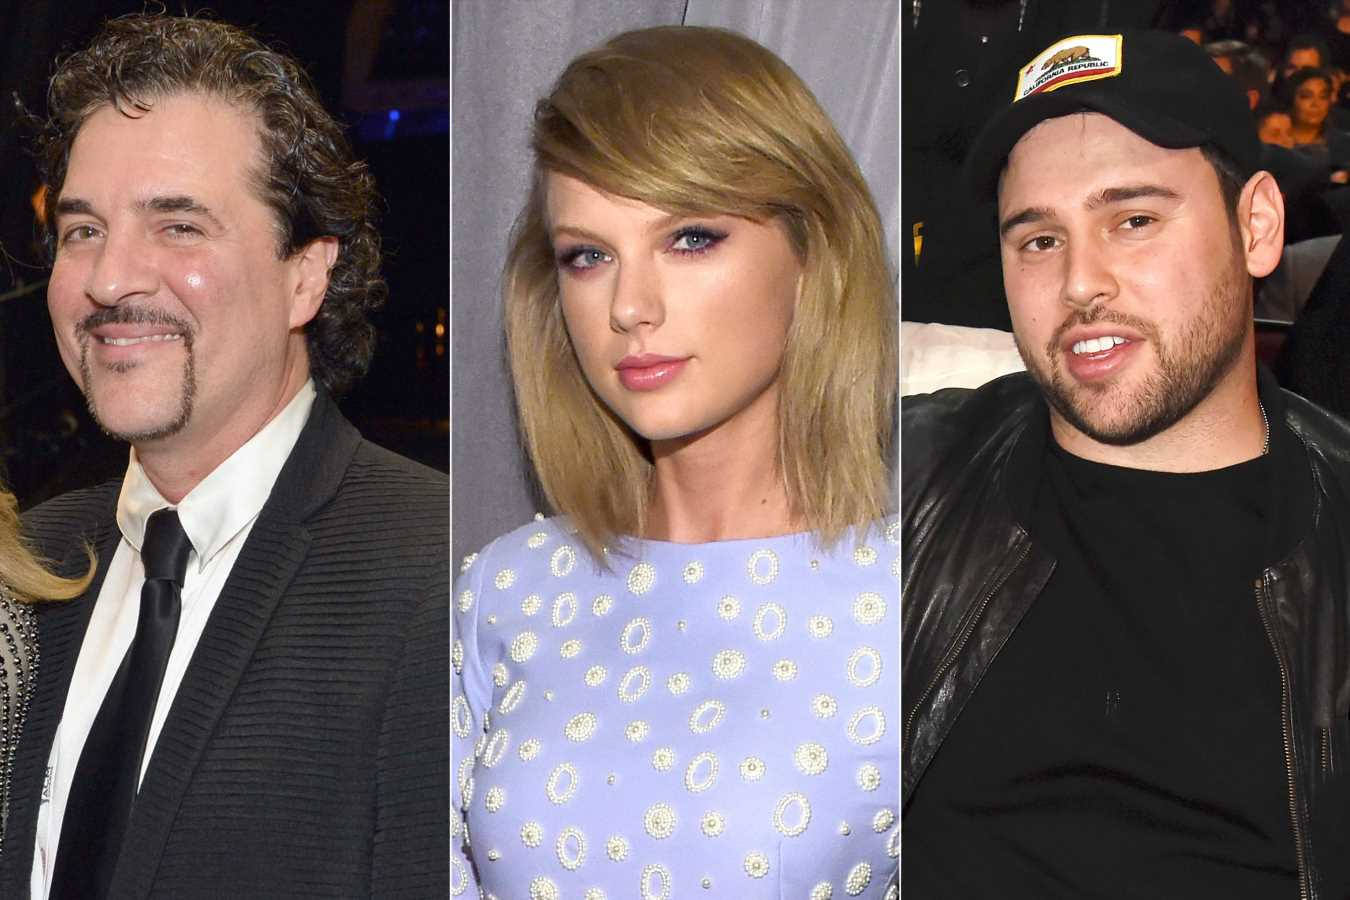 Taylor Swift 'Has No Regrets' About Speaking Out Against Scooter Braun and Scott Borchetta: Source